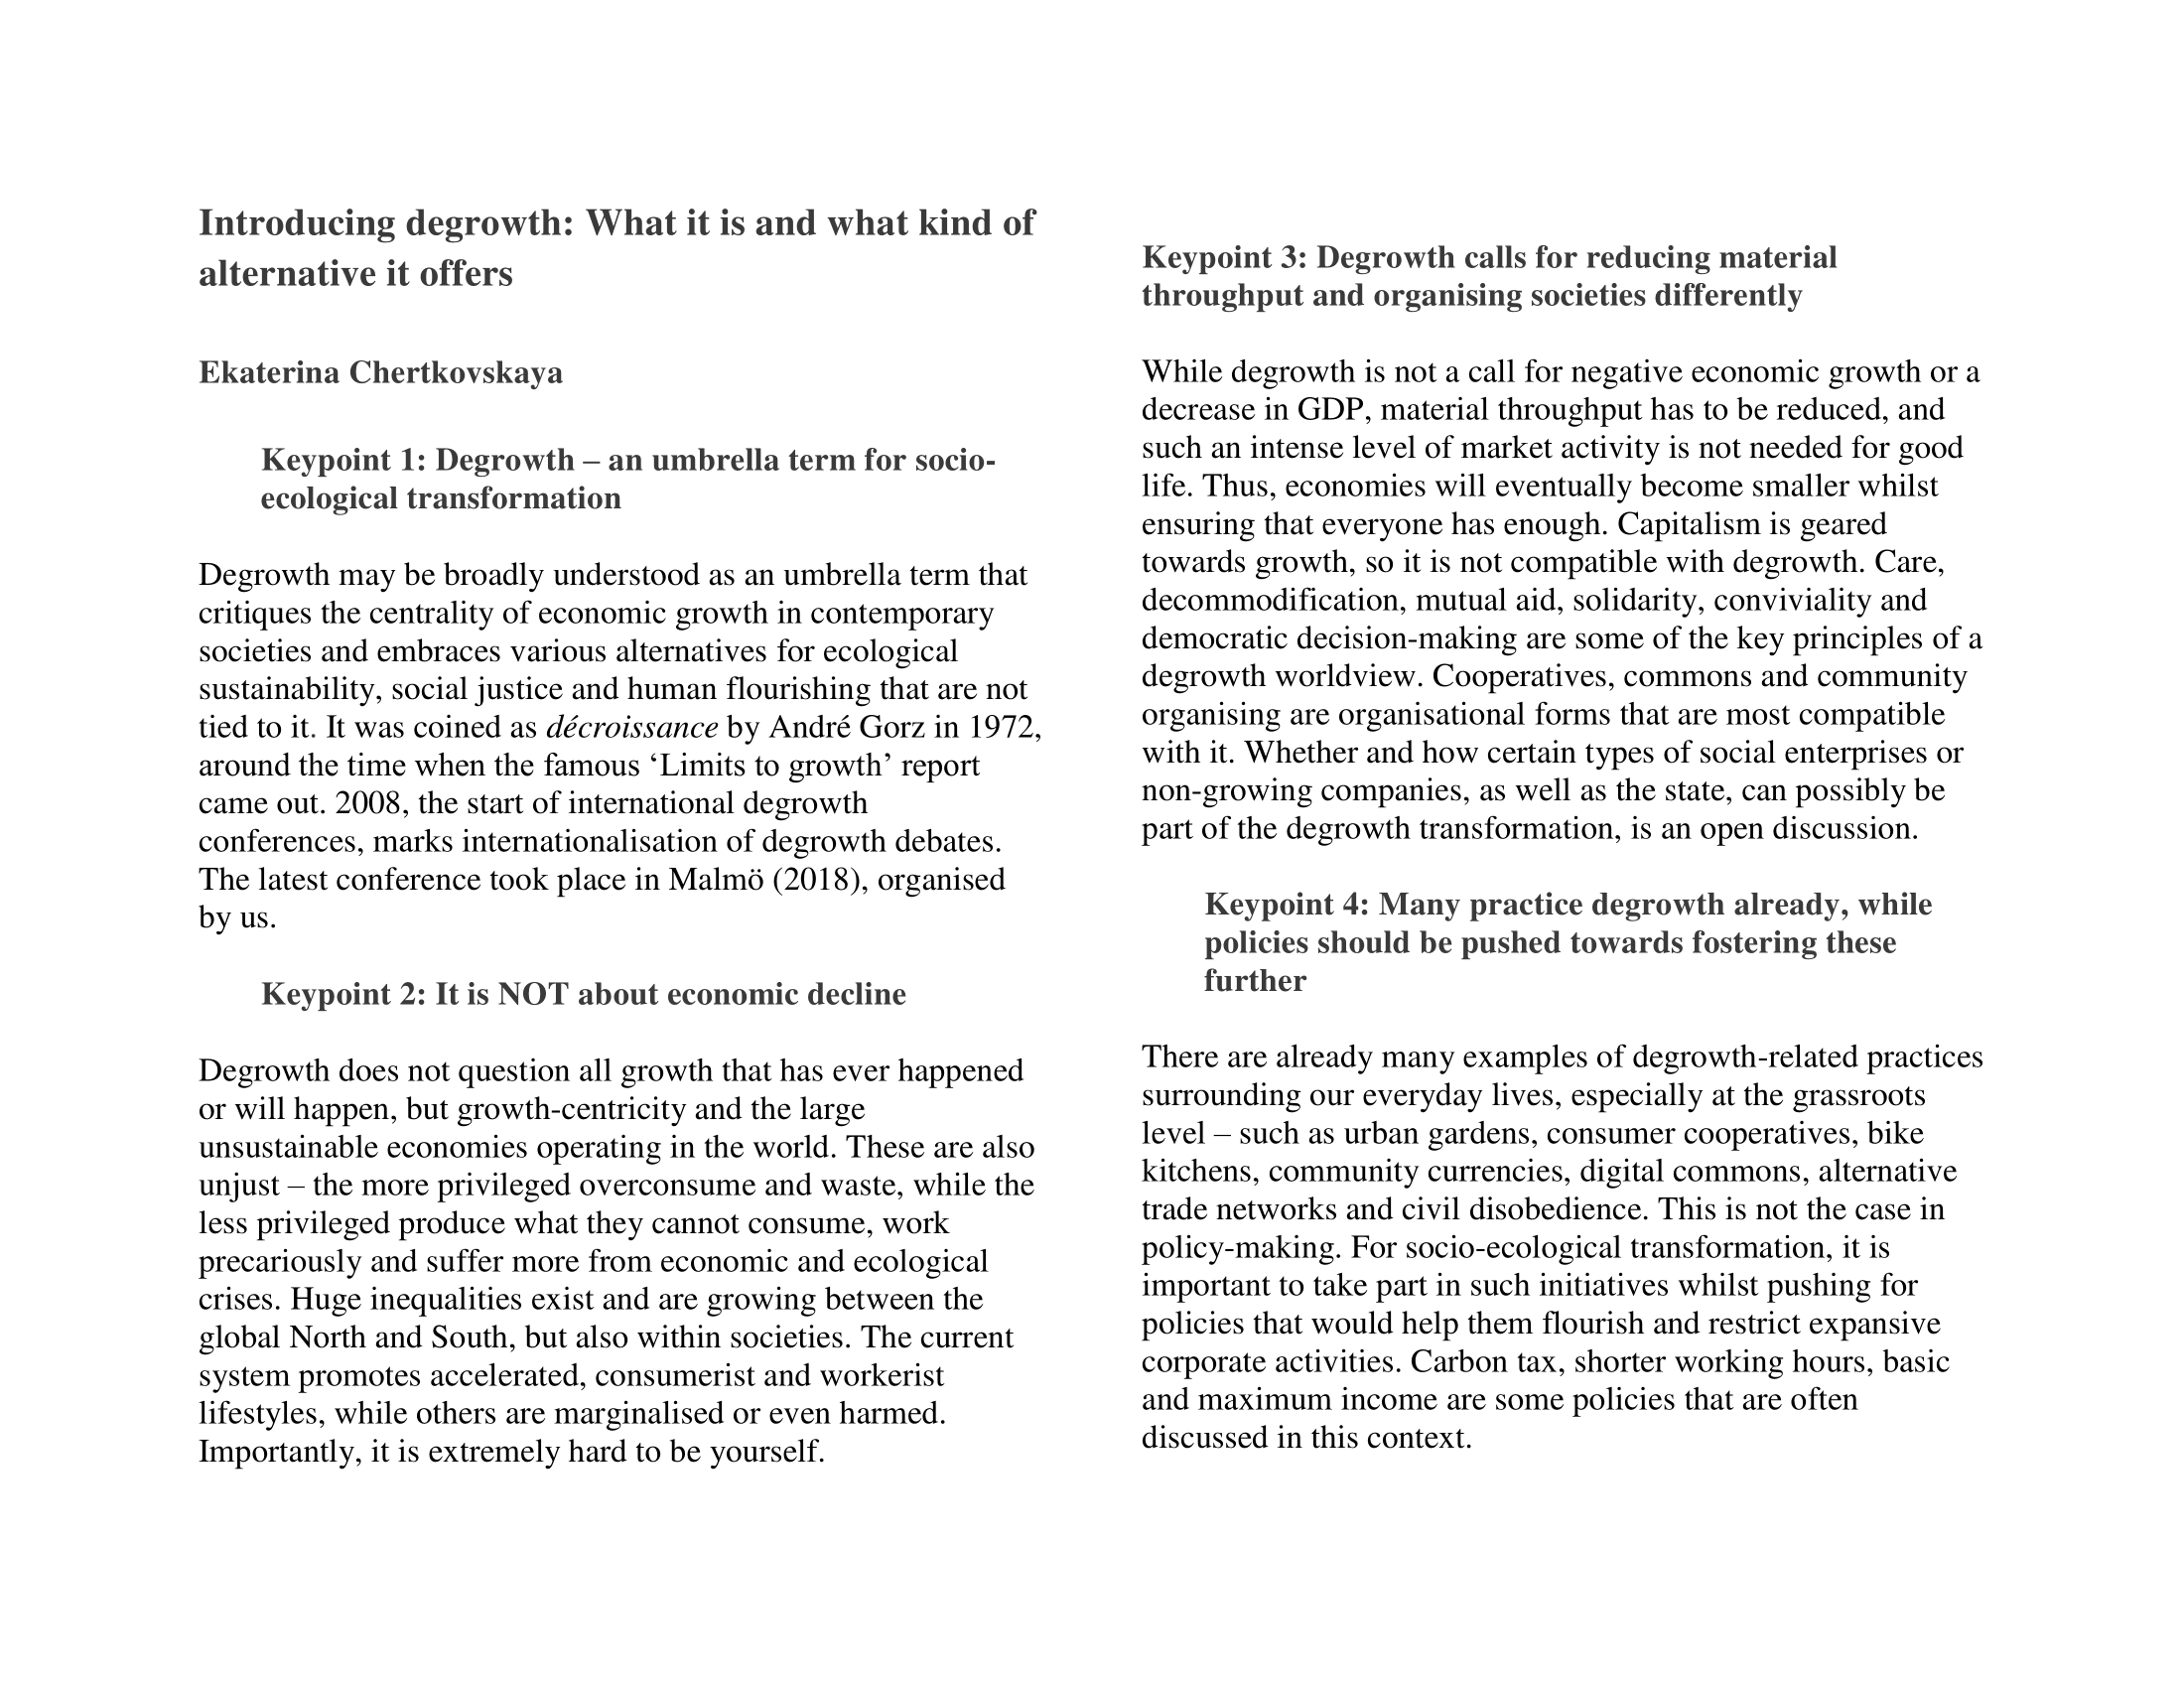 Degrowth Pamphlet-2.png